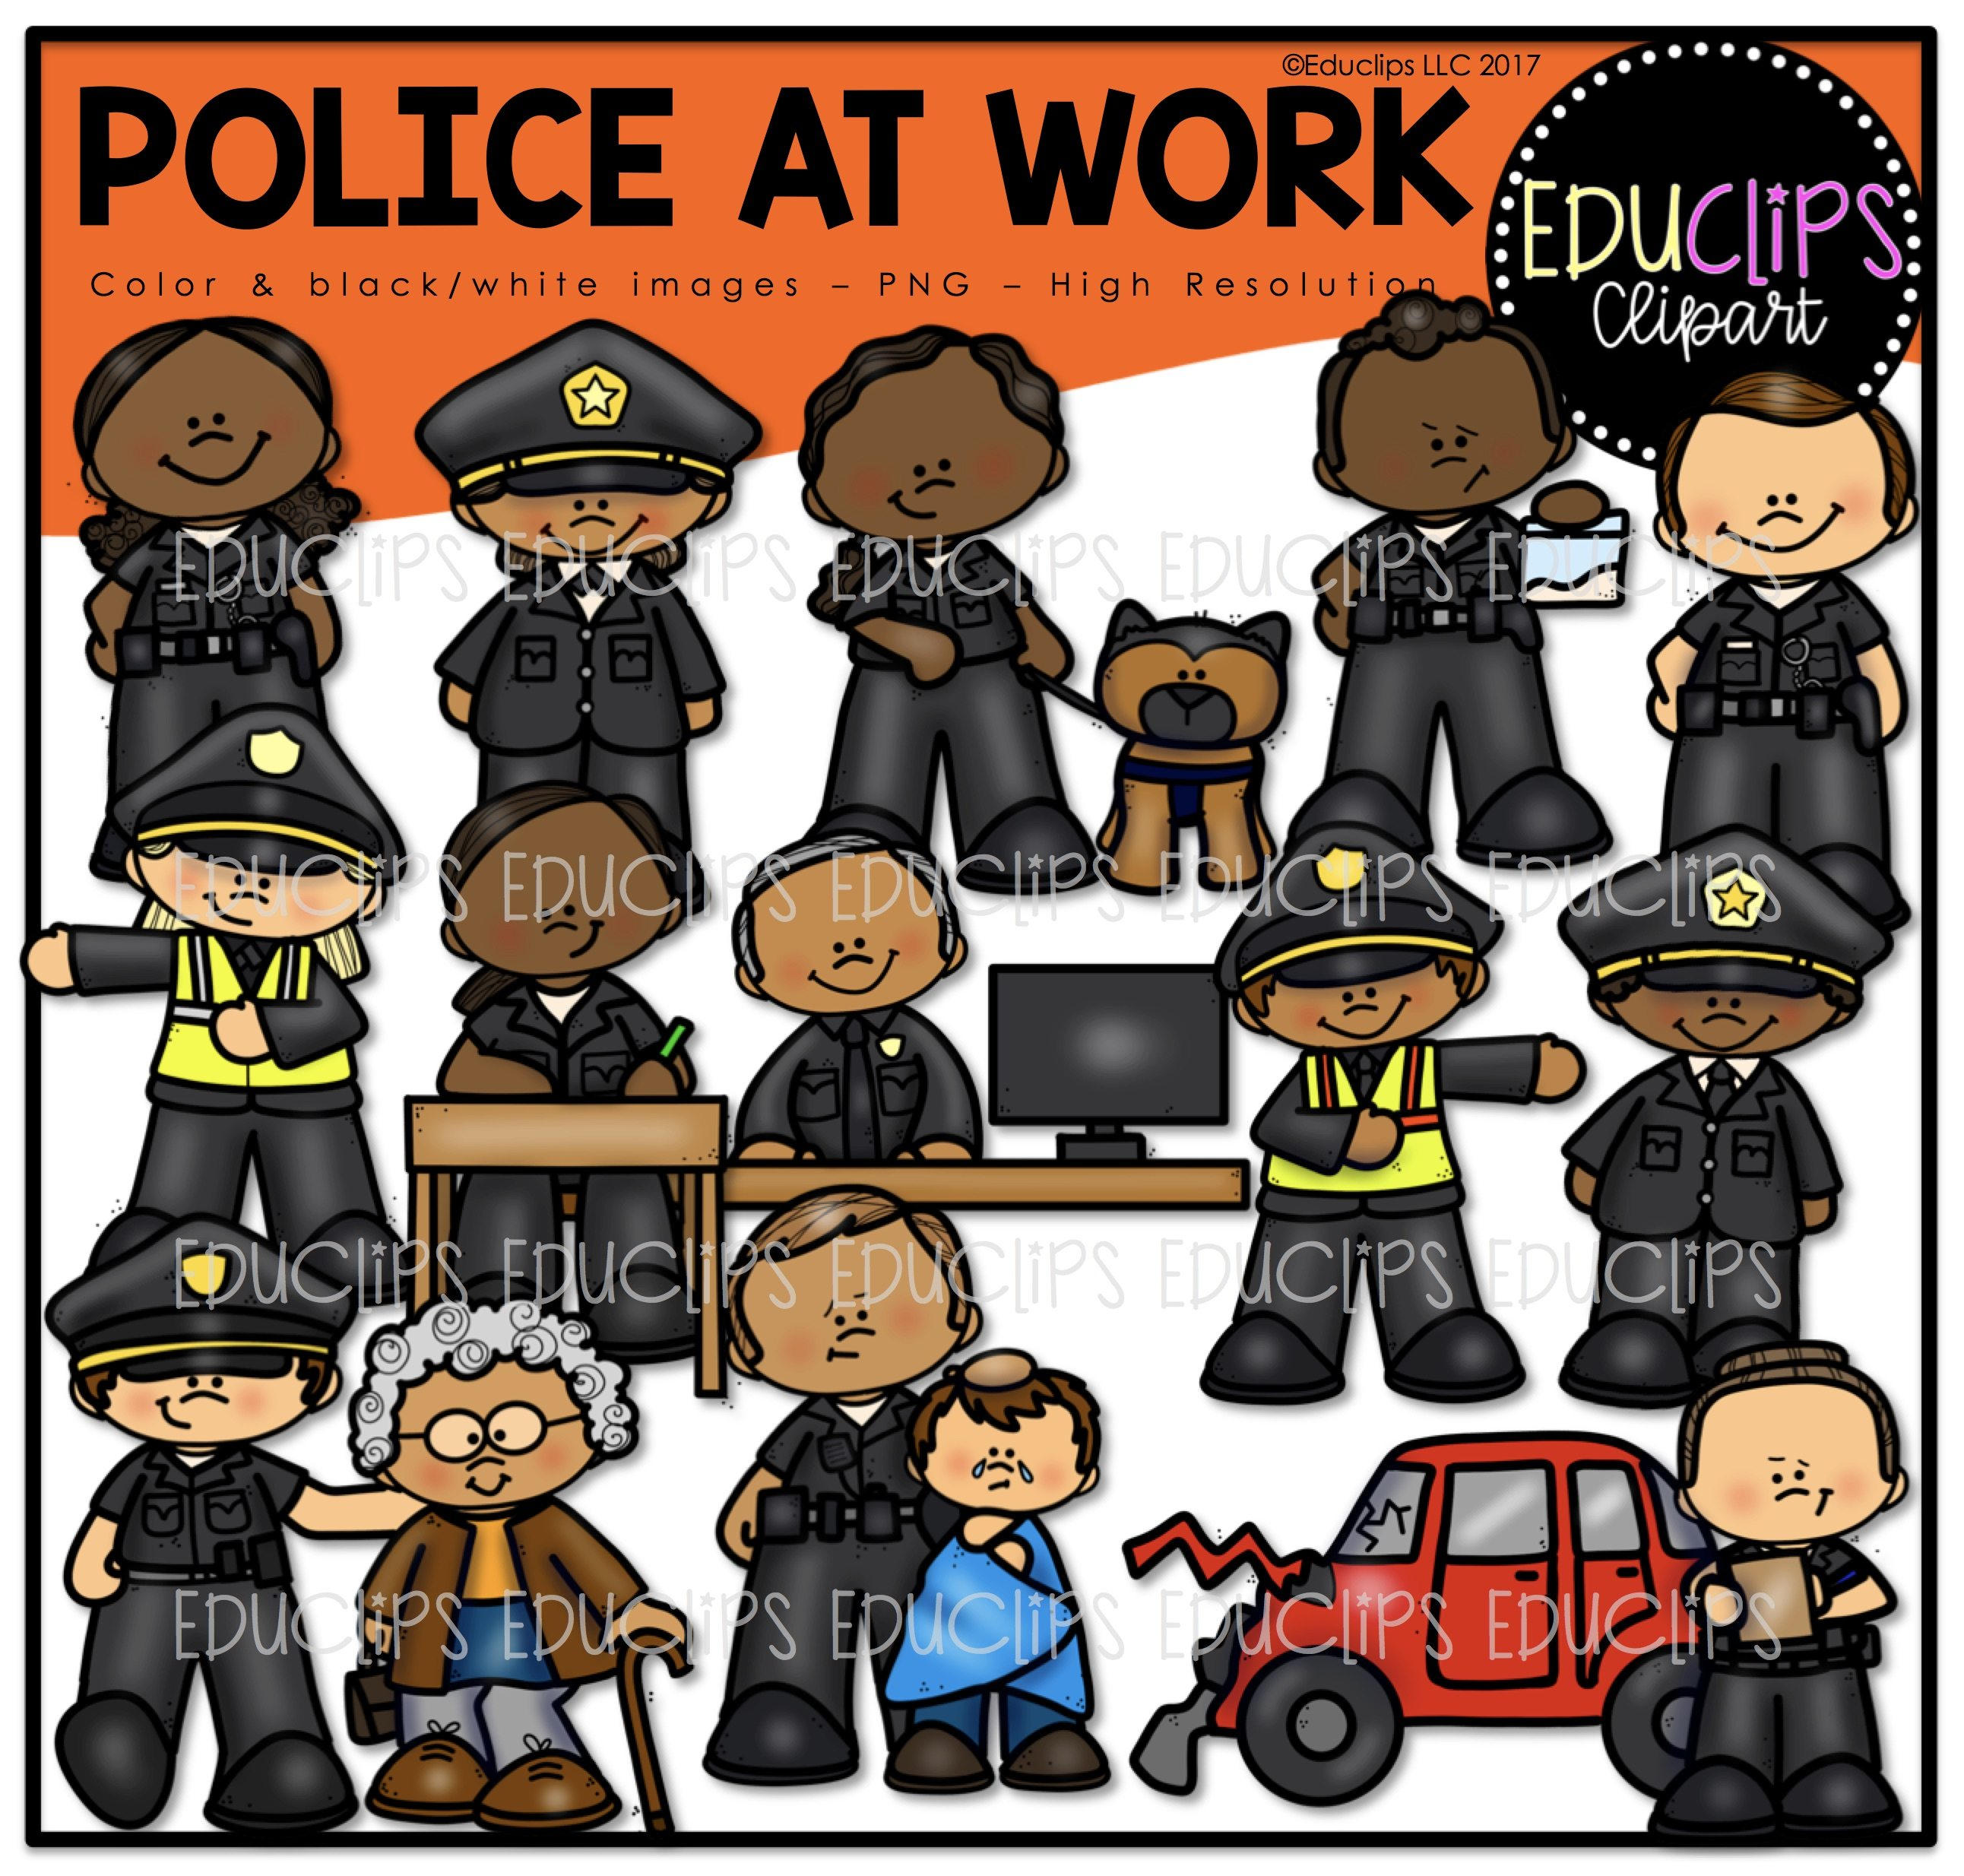 police at work clip art bundle color and b w welcome to educlips